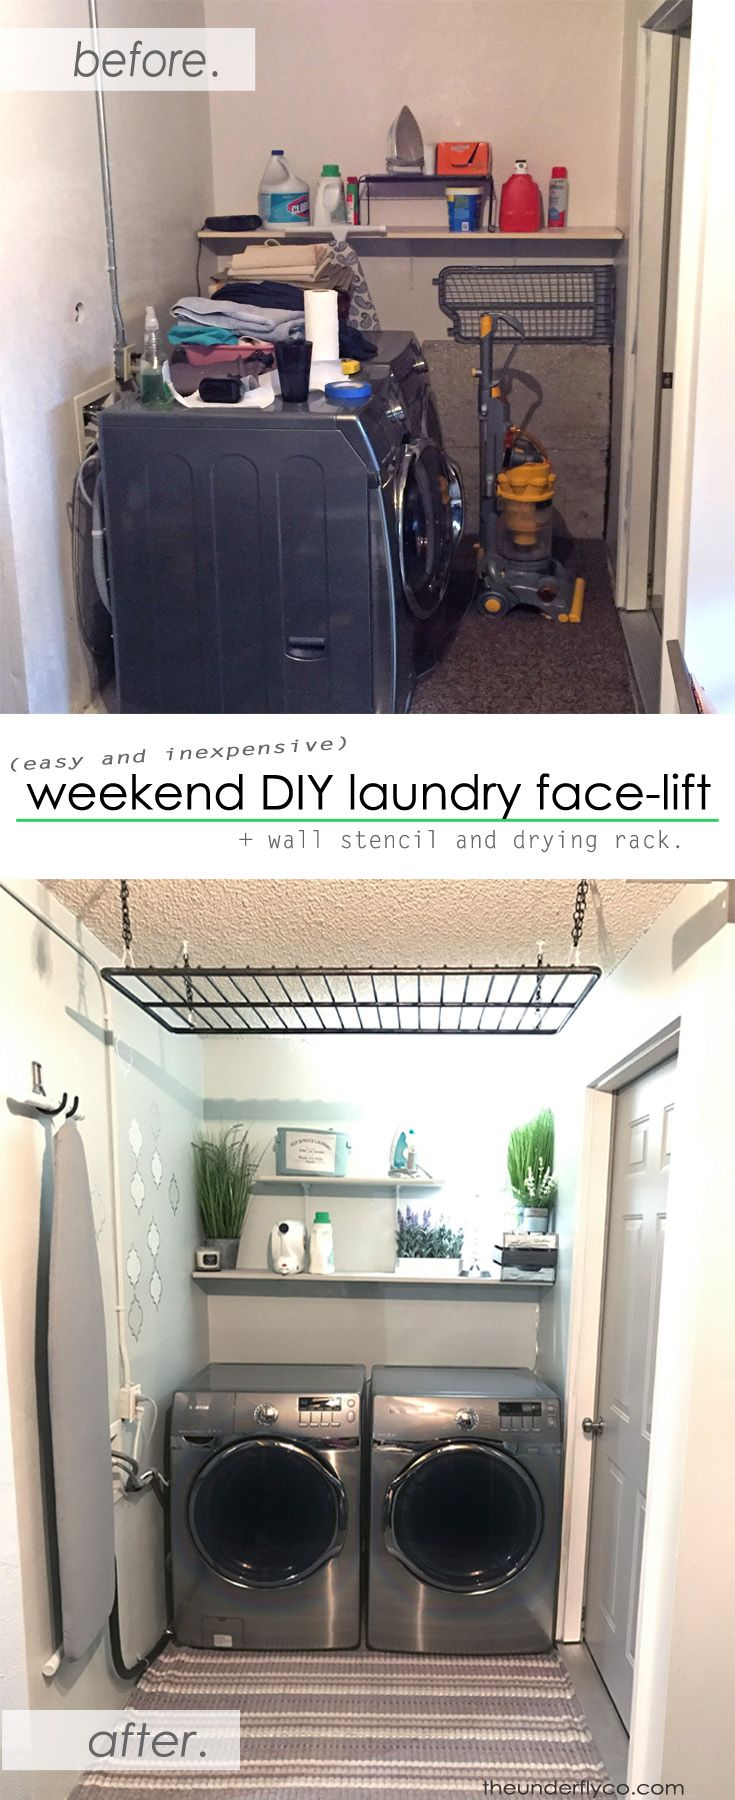 Sprucing up a gloomy dark garage laundry space using very little